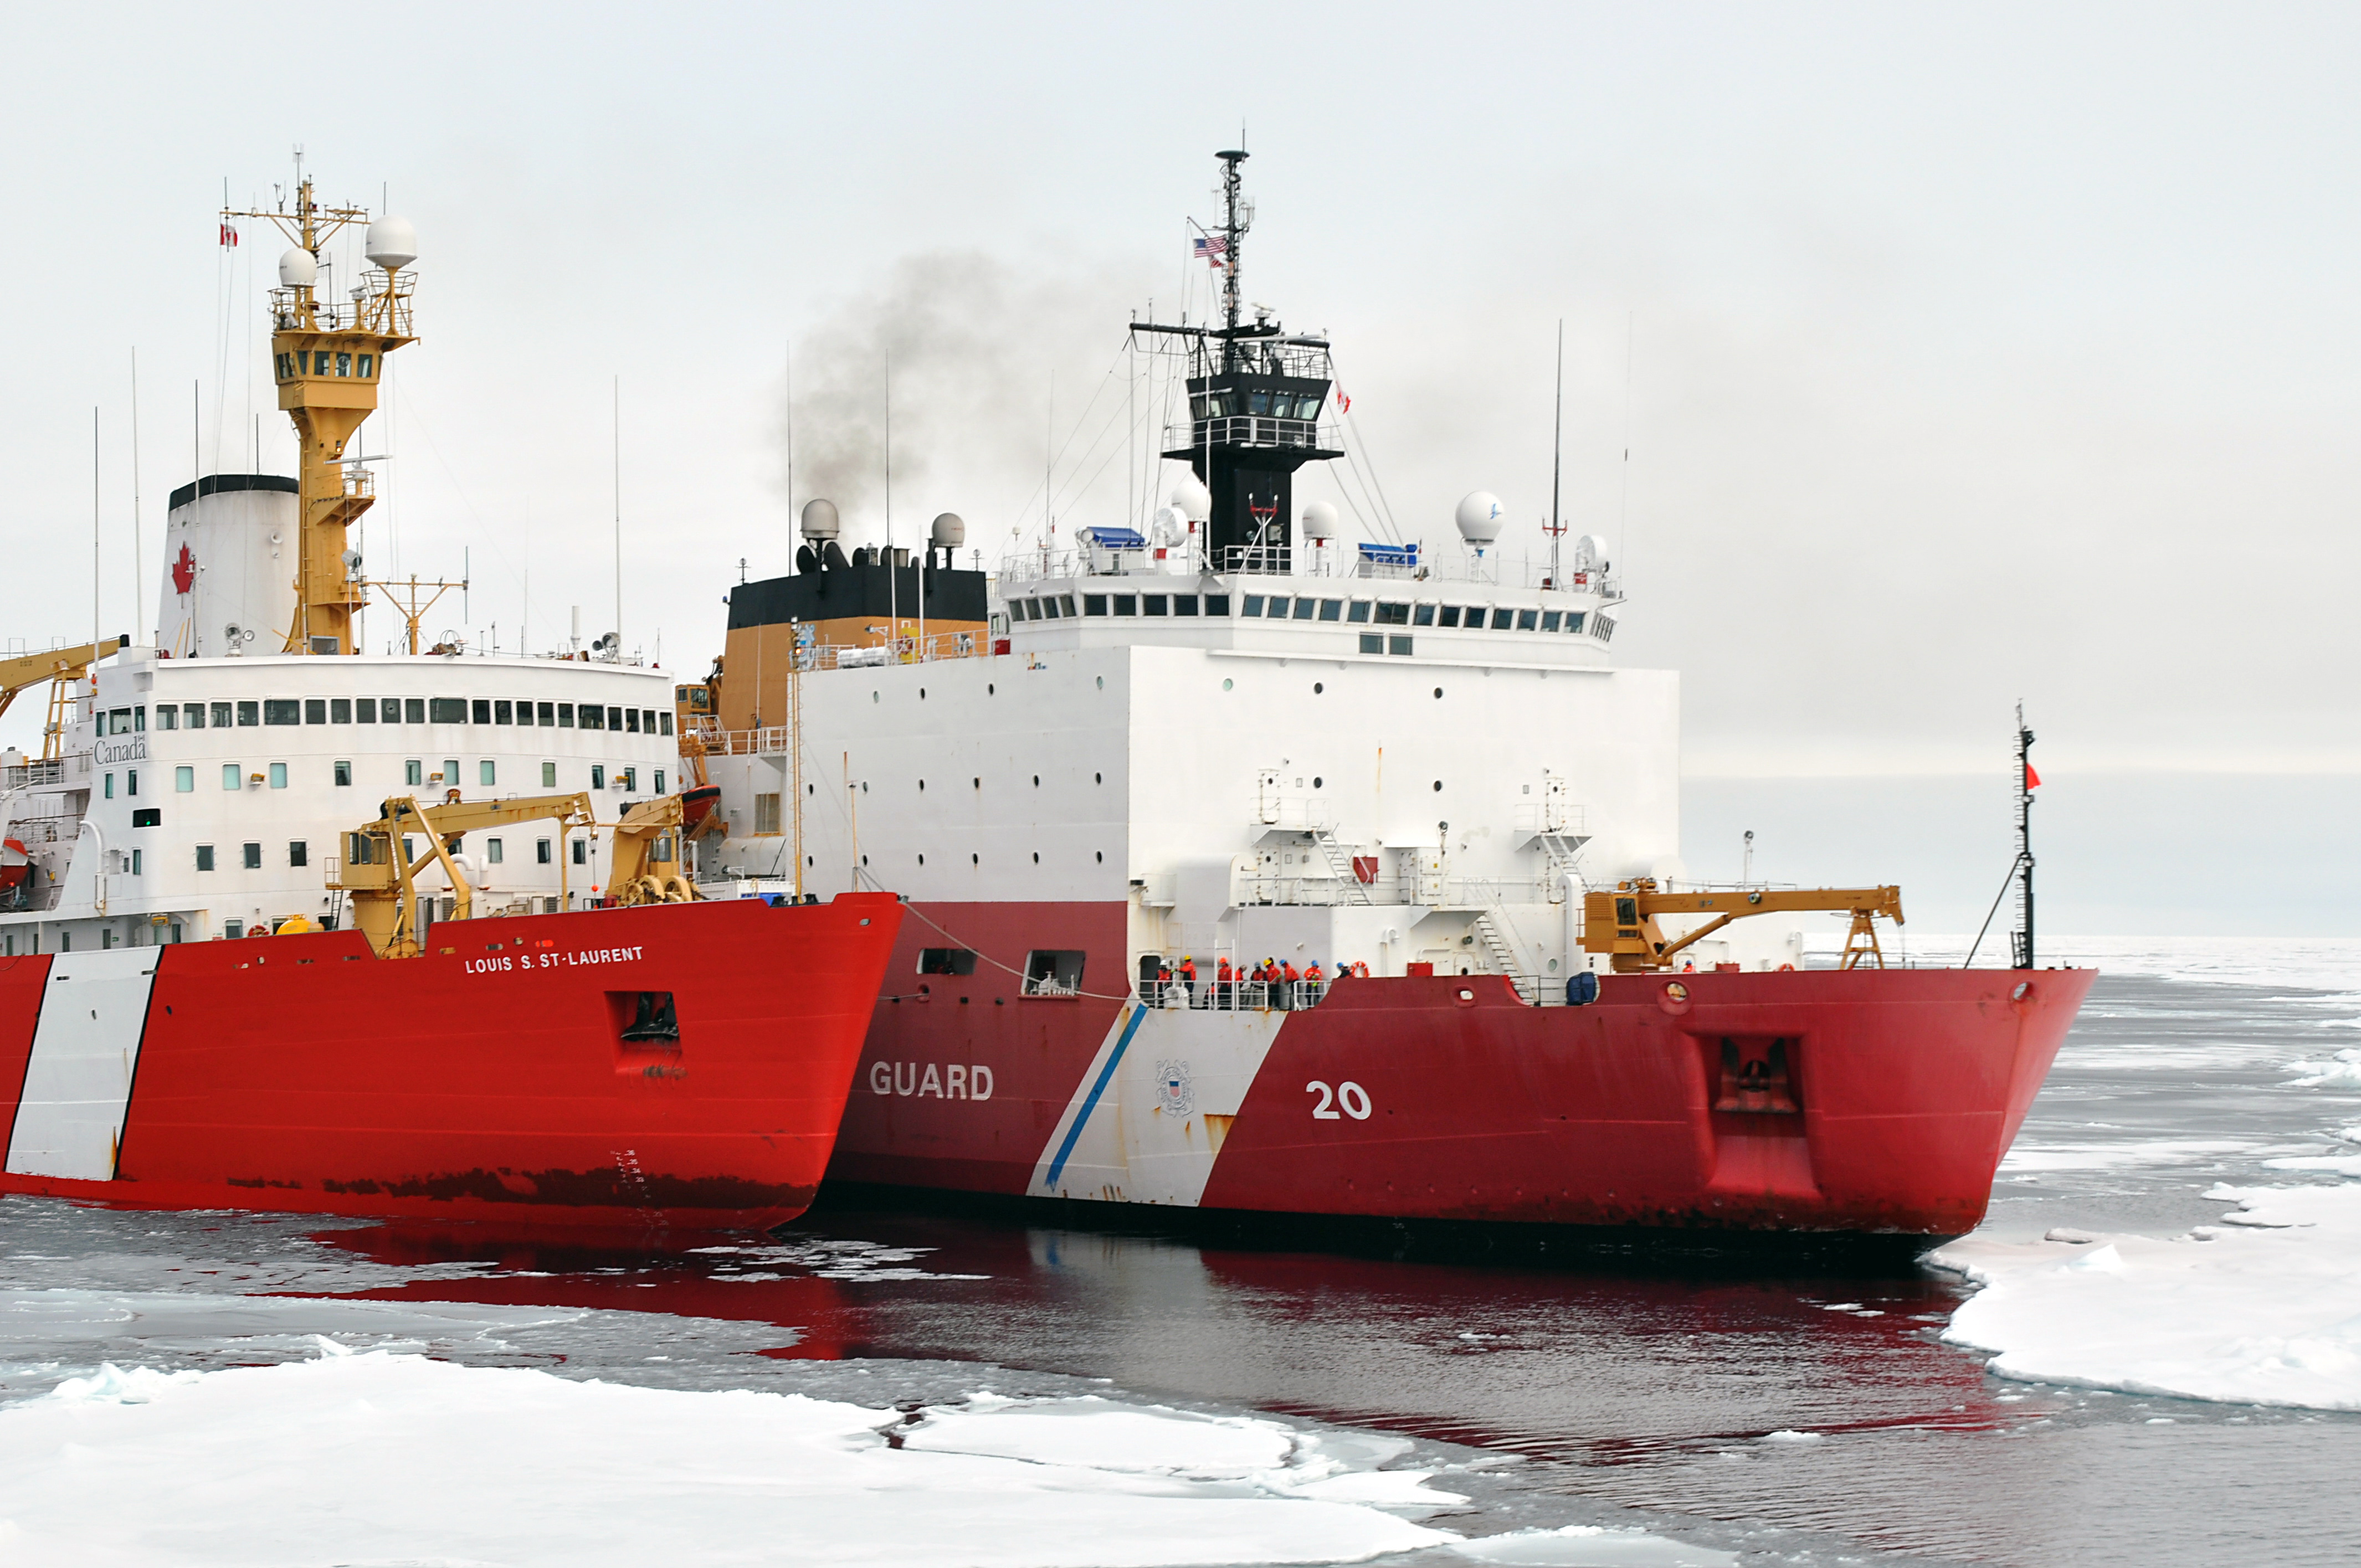 File Icebreakers Louis S St Laurent And Healy In The